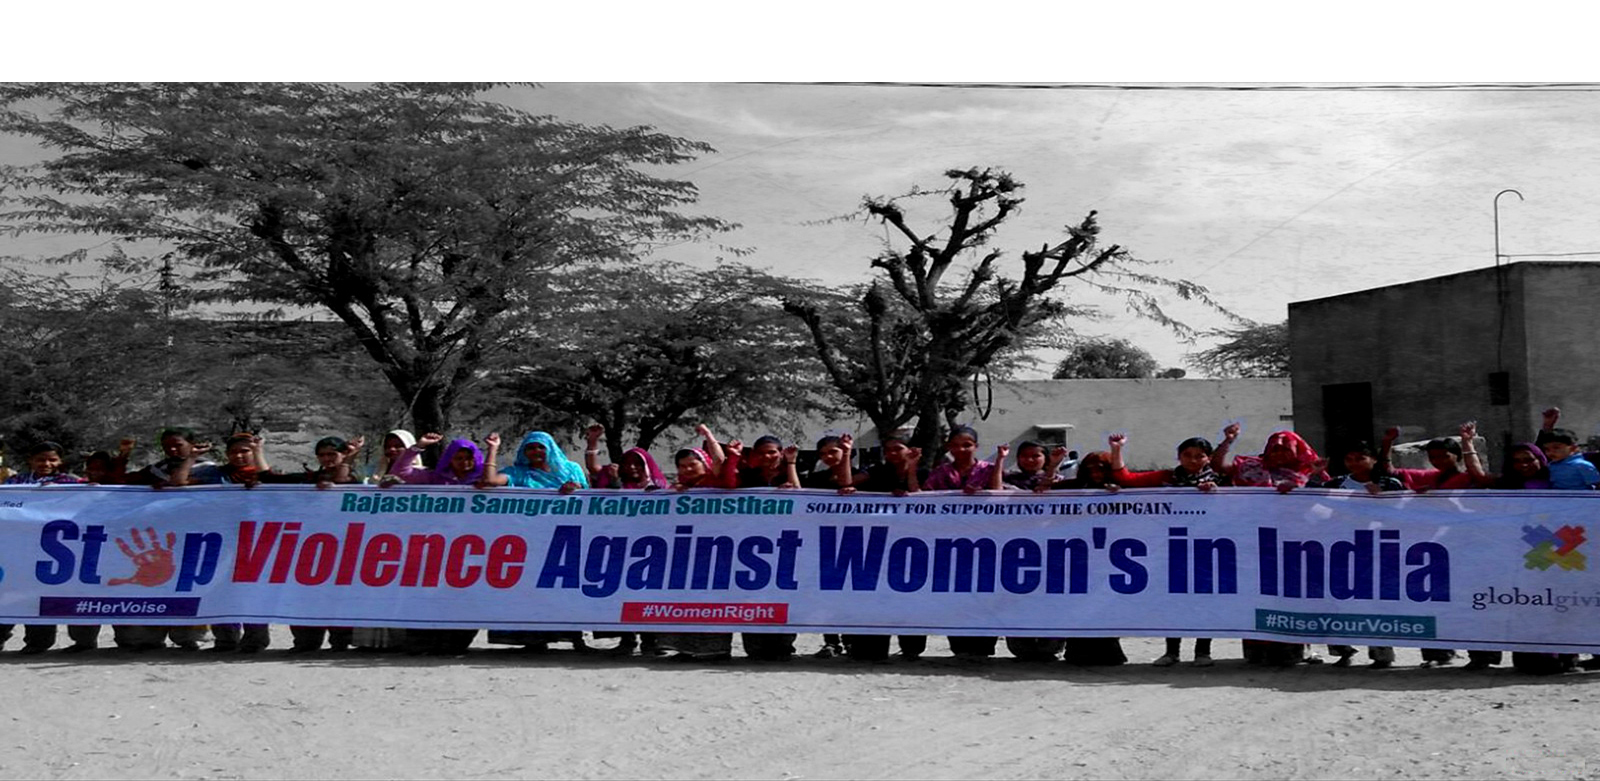 Stop Violence Against Women in India